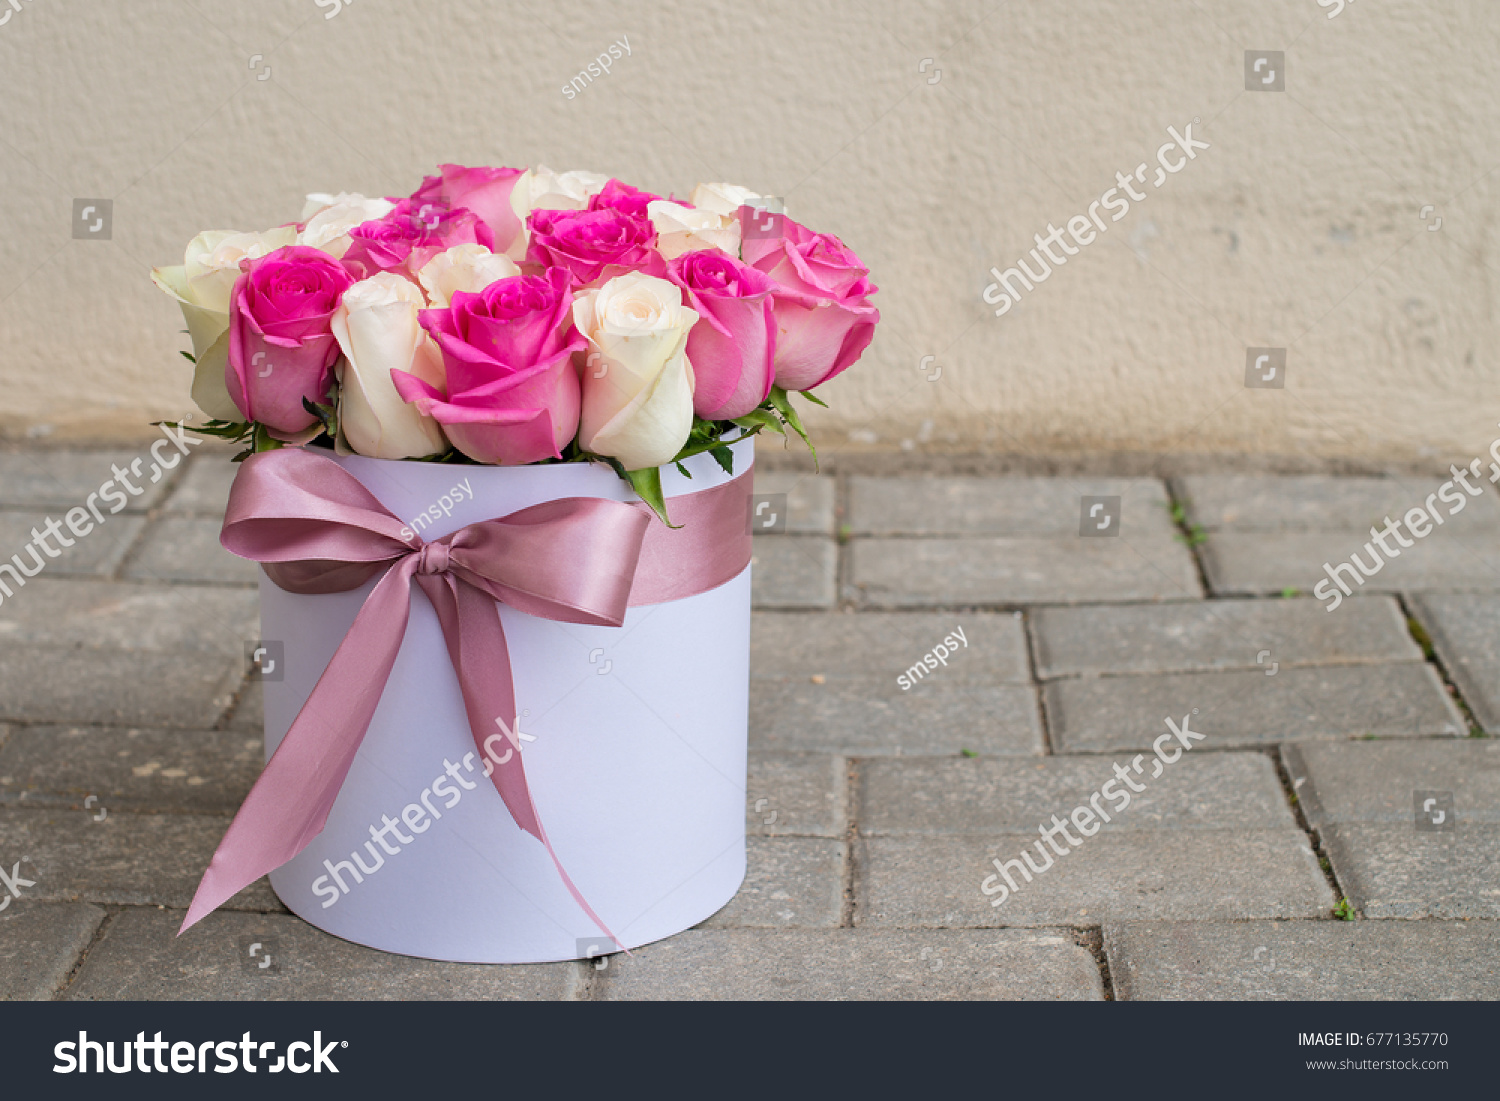 Gift box beautiful bouquet blooming pink stock photo royalty free gift box with beautiful bouquet of blooming pink and white roses and ribbon standing on the izmirmasajfo